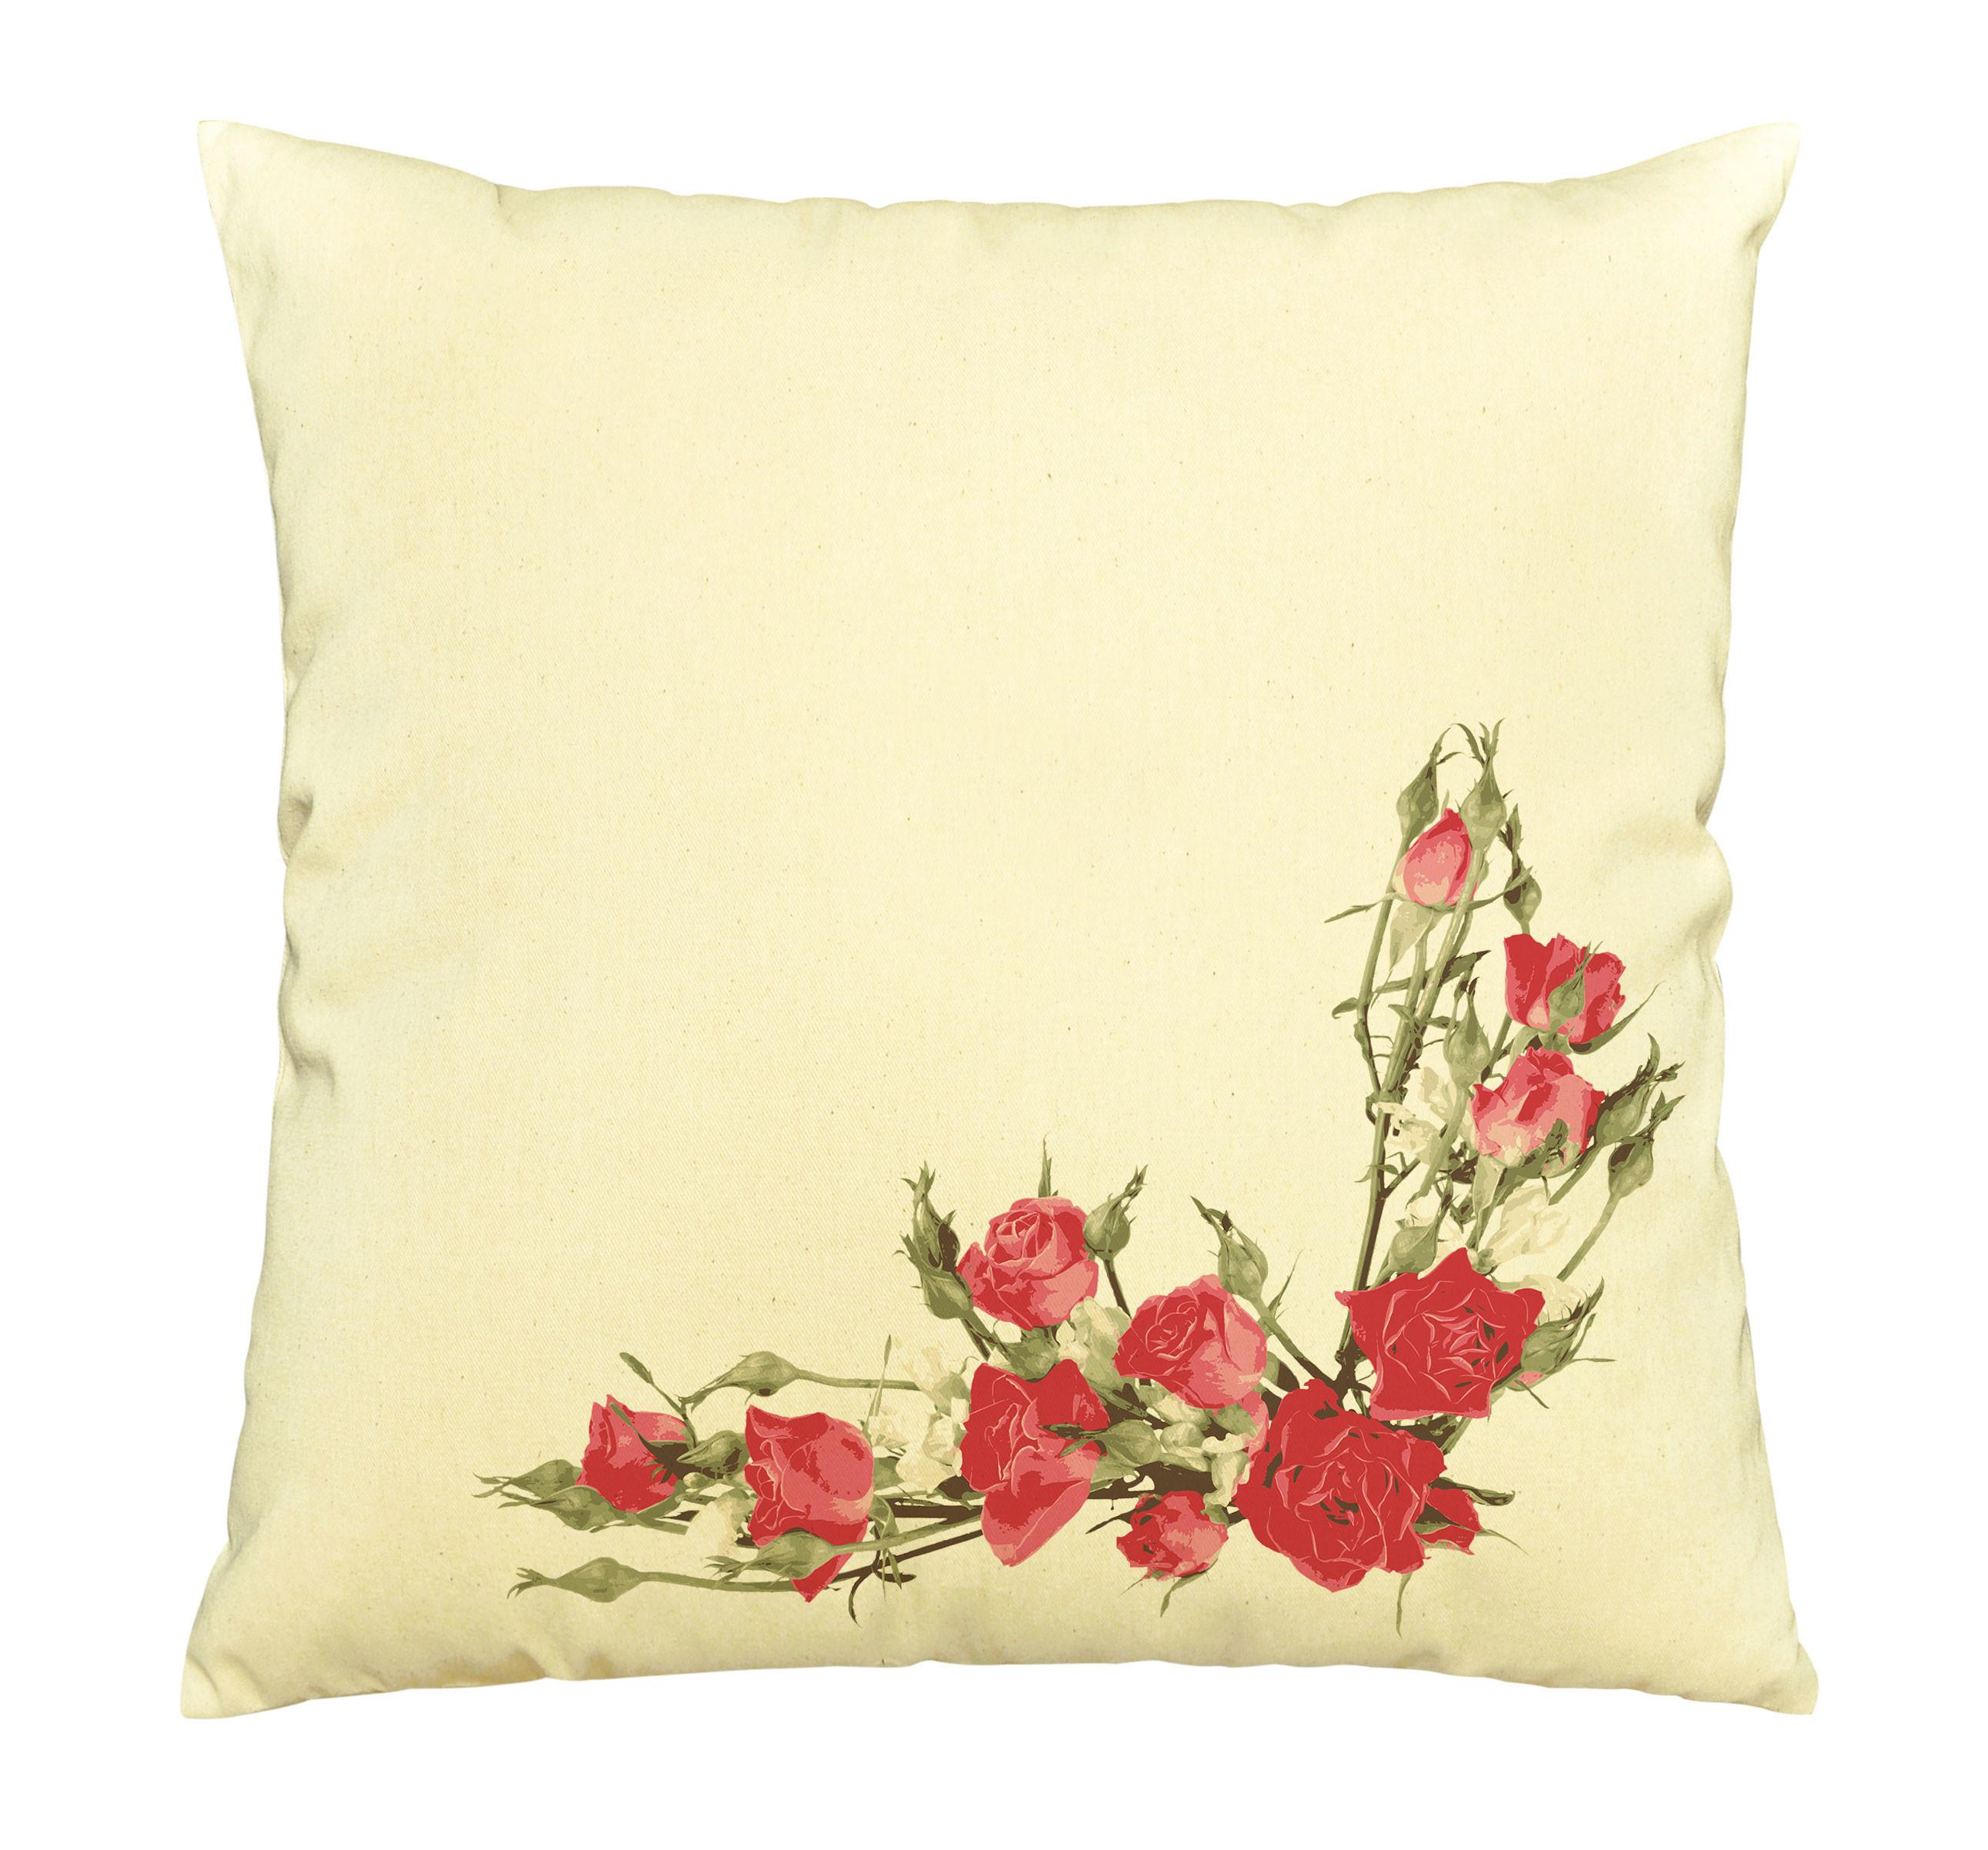 Spring Flower Print Cotton Throw Pillows Cover Cushion